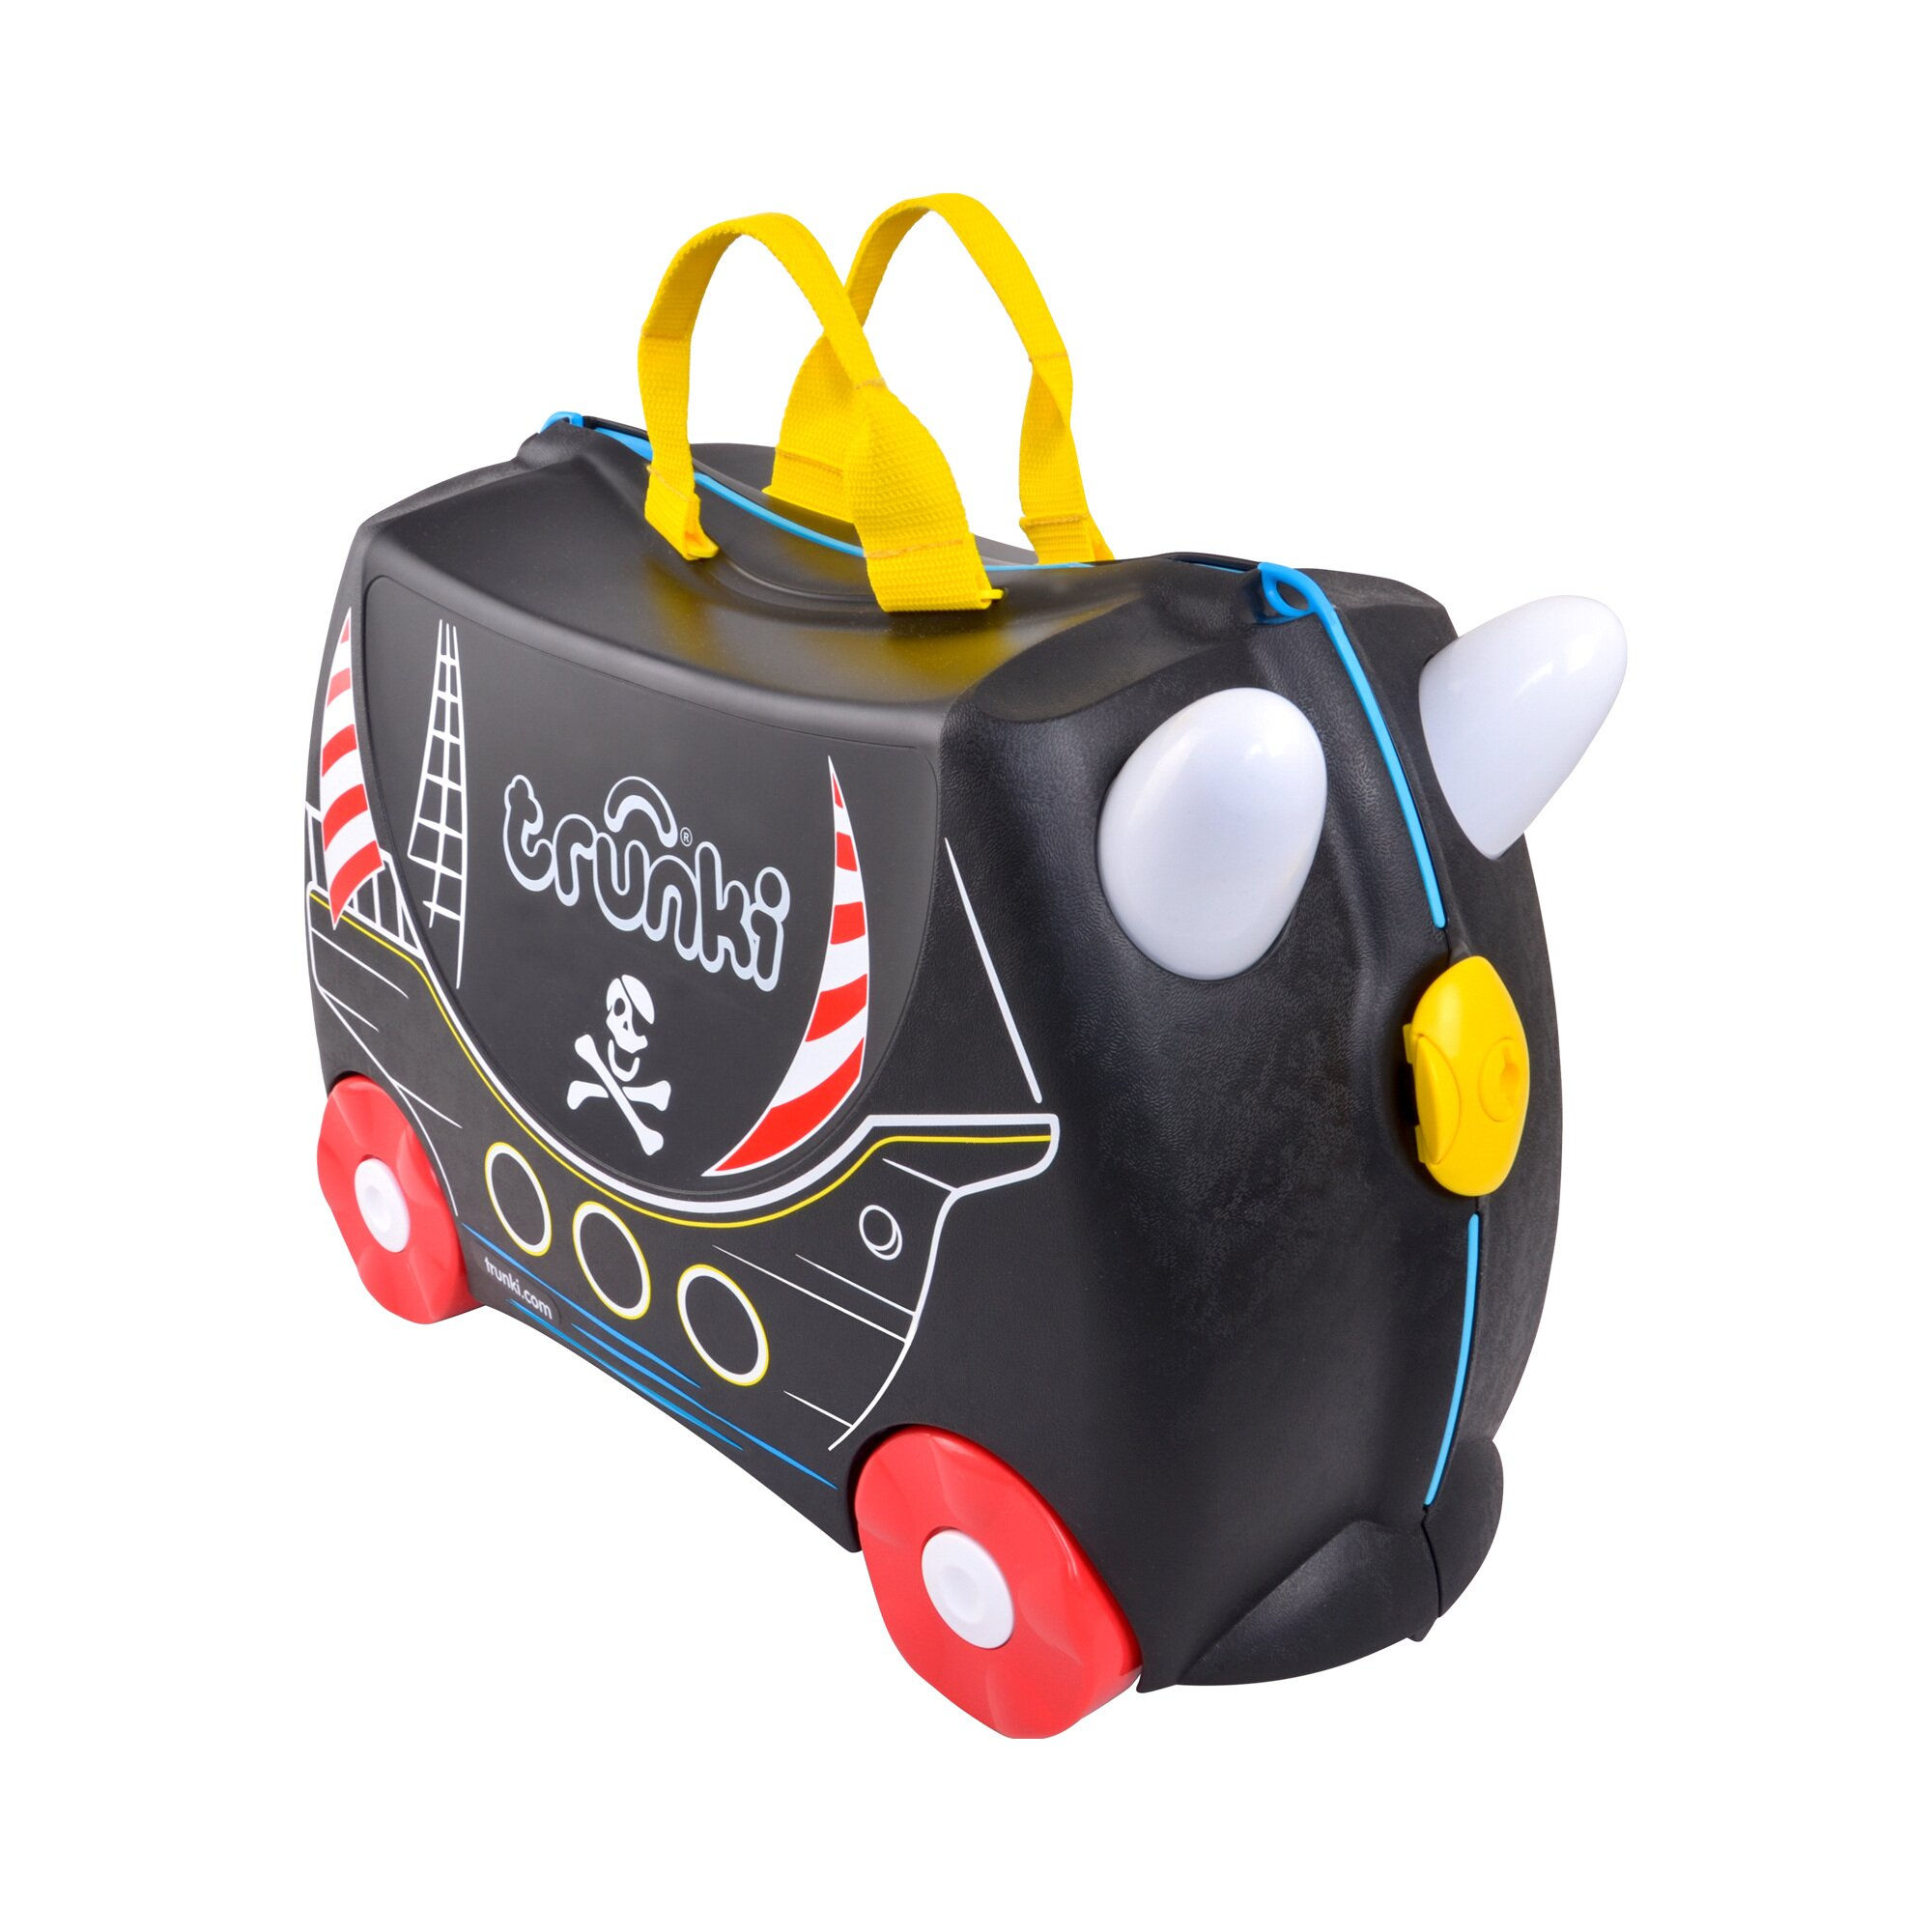 Trunki Kindertrolley Pedro das Piratenschiff